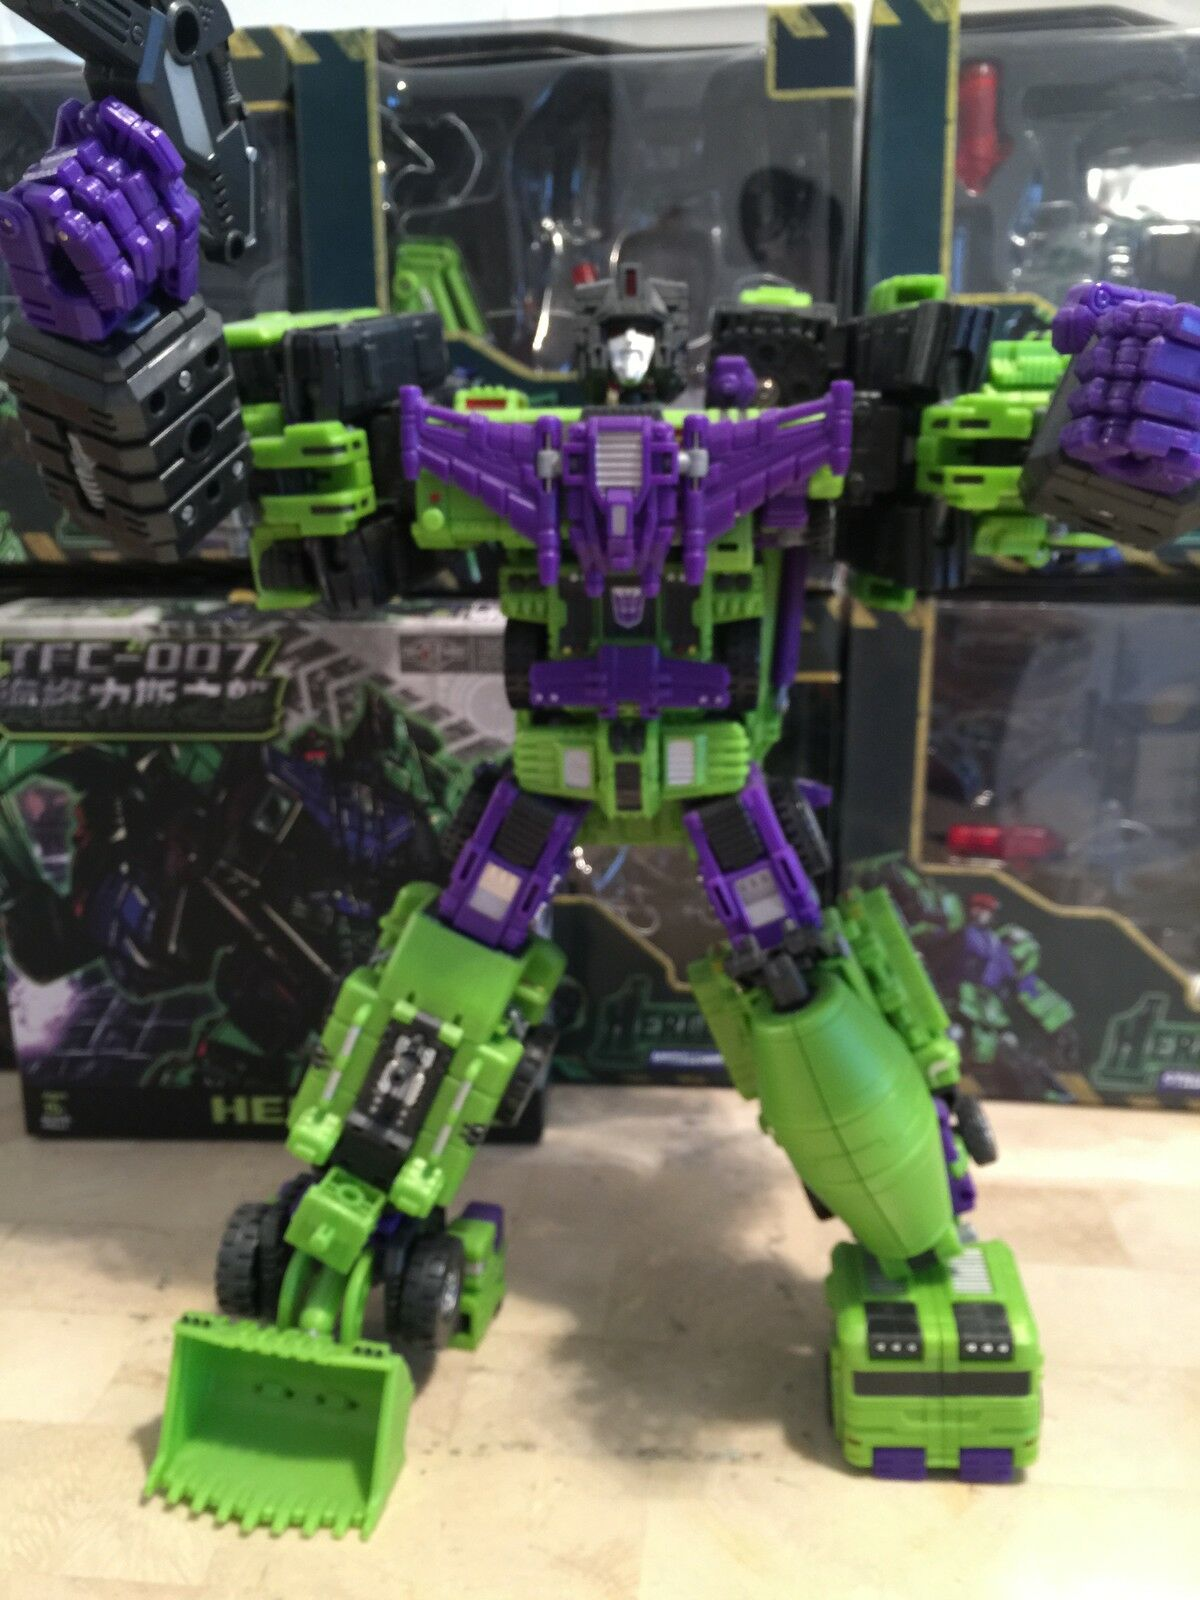 TFC Hercules + Rage of Hercules kit (OFFICIAL (OFFICIAL (OFFICIAL PRODUCT) bc43a7